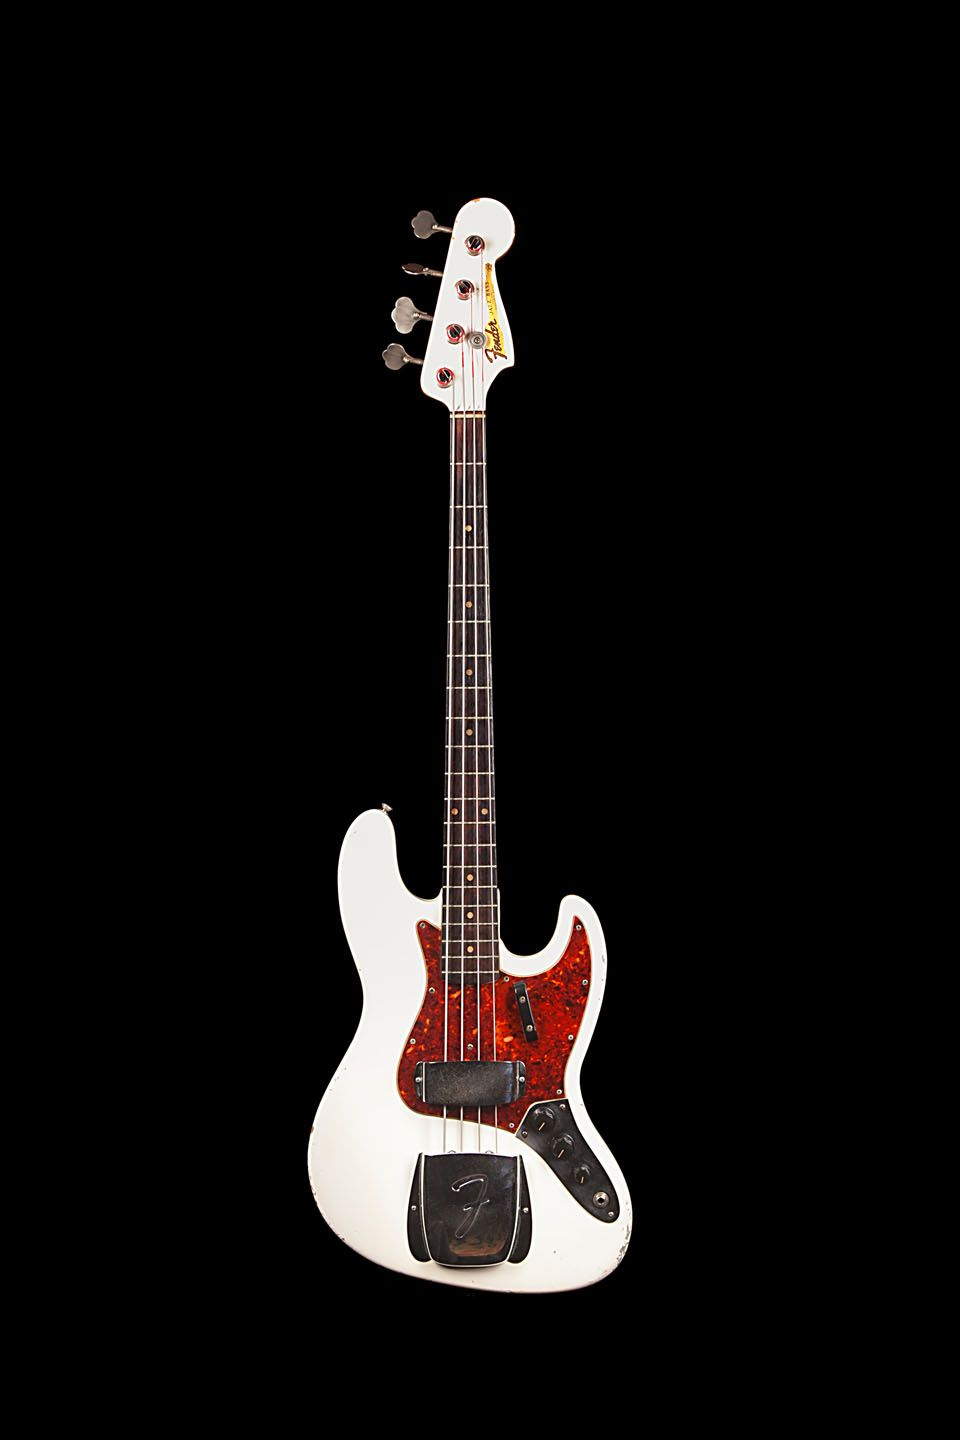 c73ce43d2fc 1963 Fender Jazz Bass - Matching headstock. | Strings Attached ...